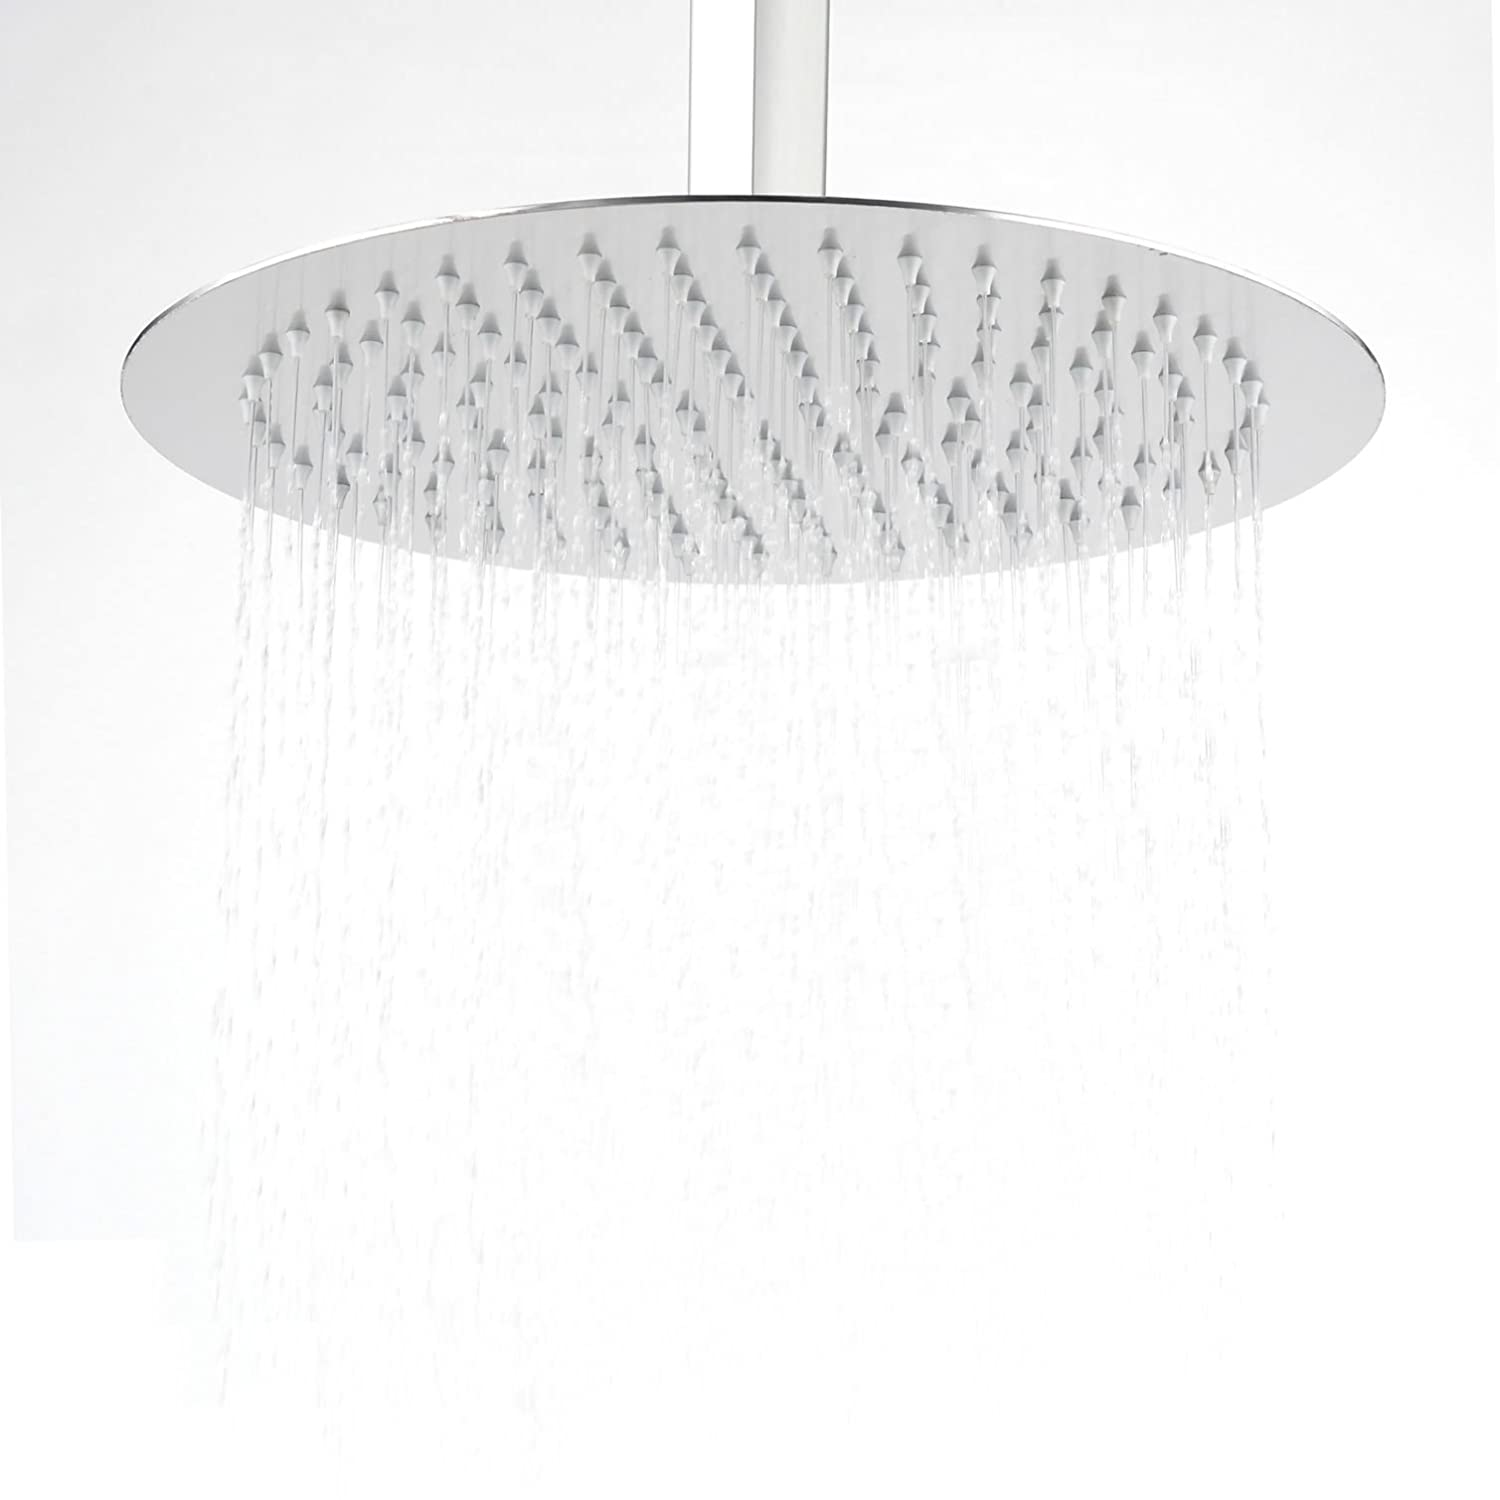 Hiendure® 12-inch High Pressure Ultra Thin 304 Stainless Steel Square Rain Shower Head Home Built AX-AY-ABHI-81808